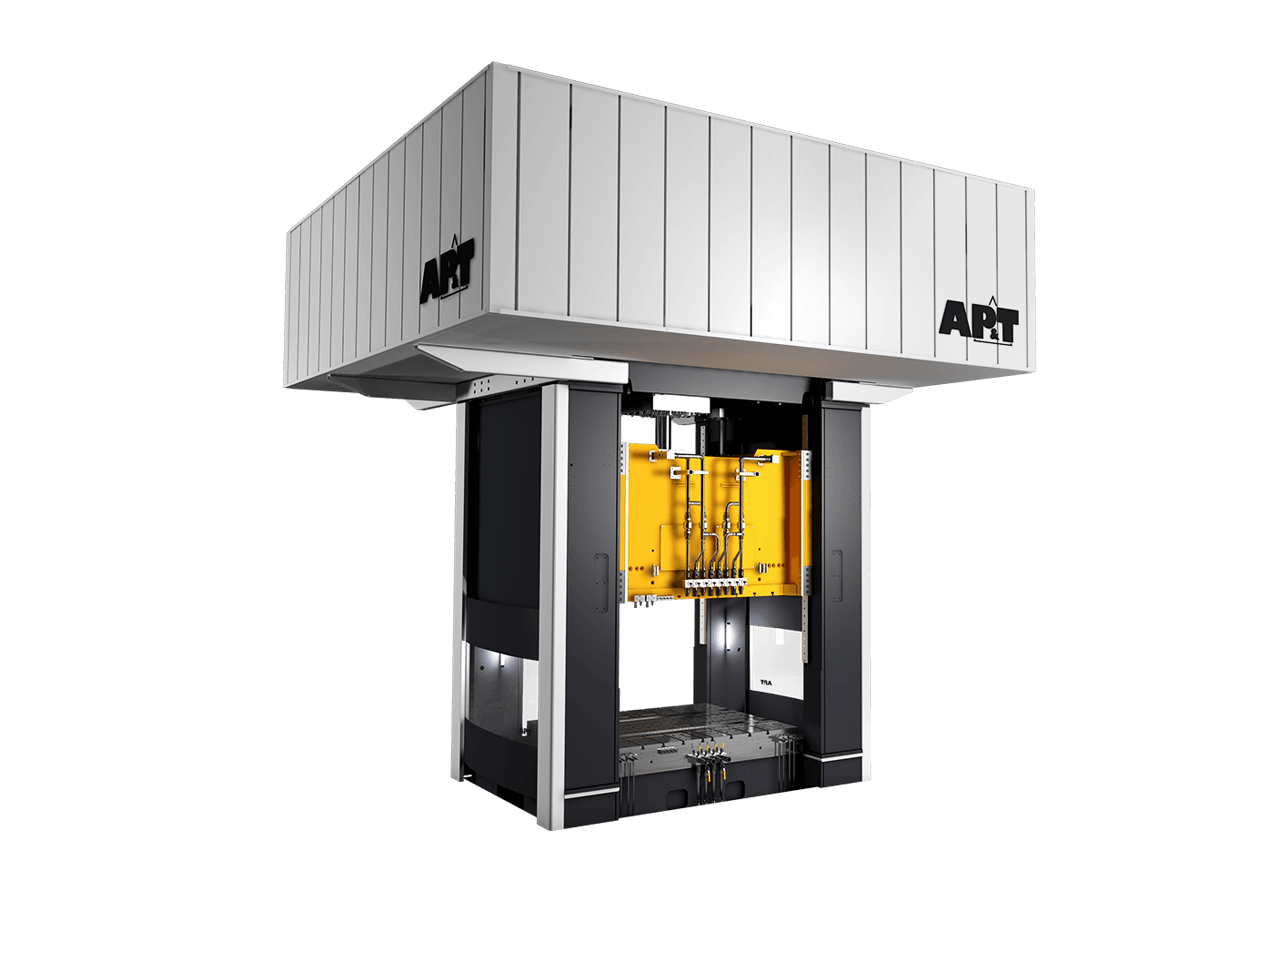 AP&T's servo hydraulic press is the latest sensation — it combines the consistently high press force offered by hydraulic presses with the energy efficiency and speed control possibilities offered by servo mechanical presses.